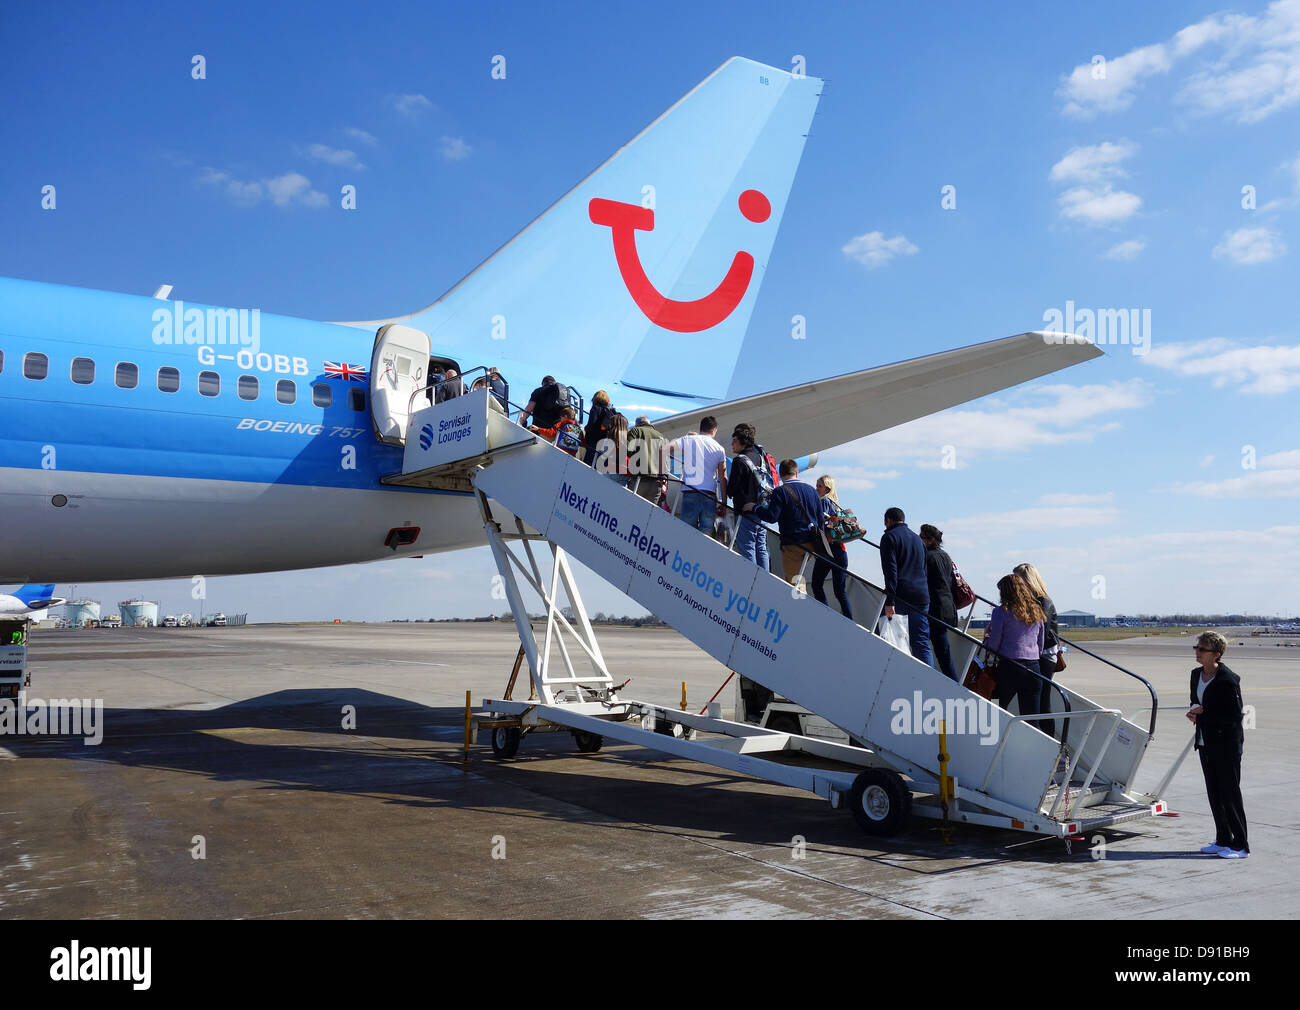 Passengers boarding a Thomson flight, UK - Stock Image